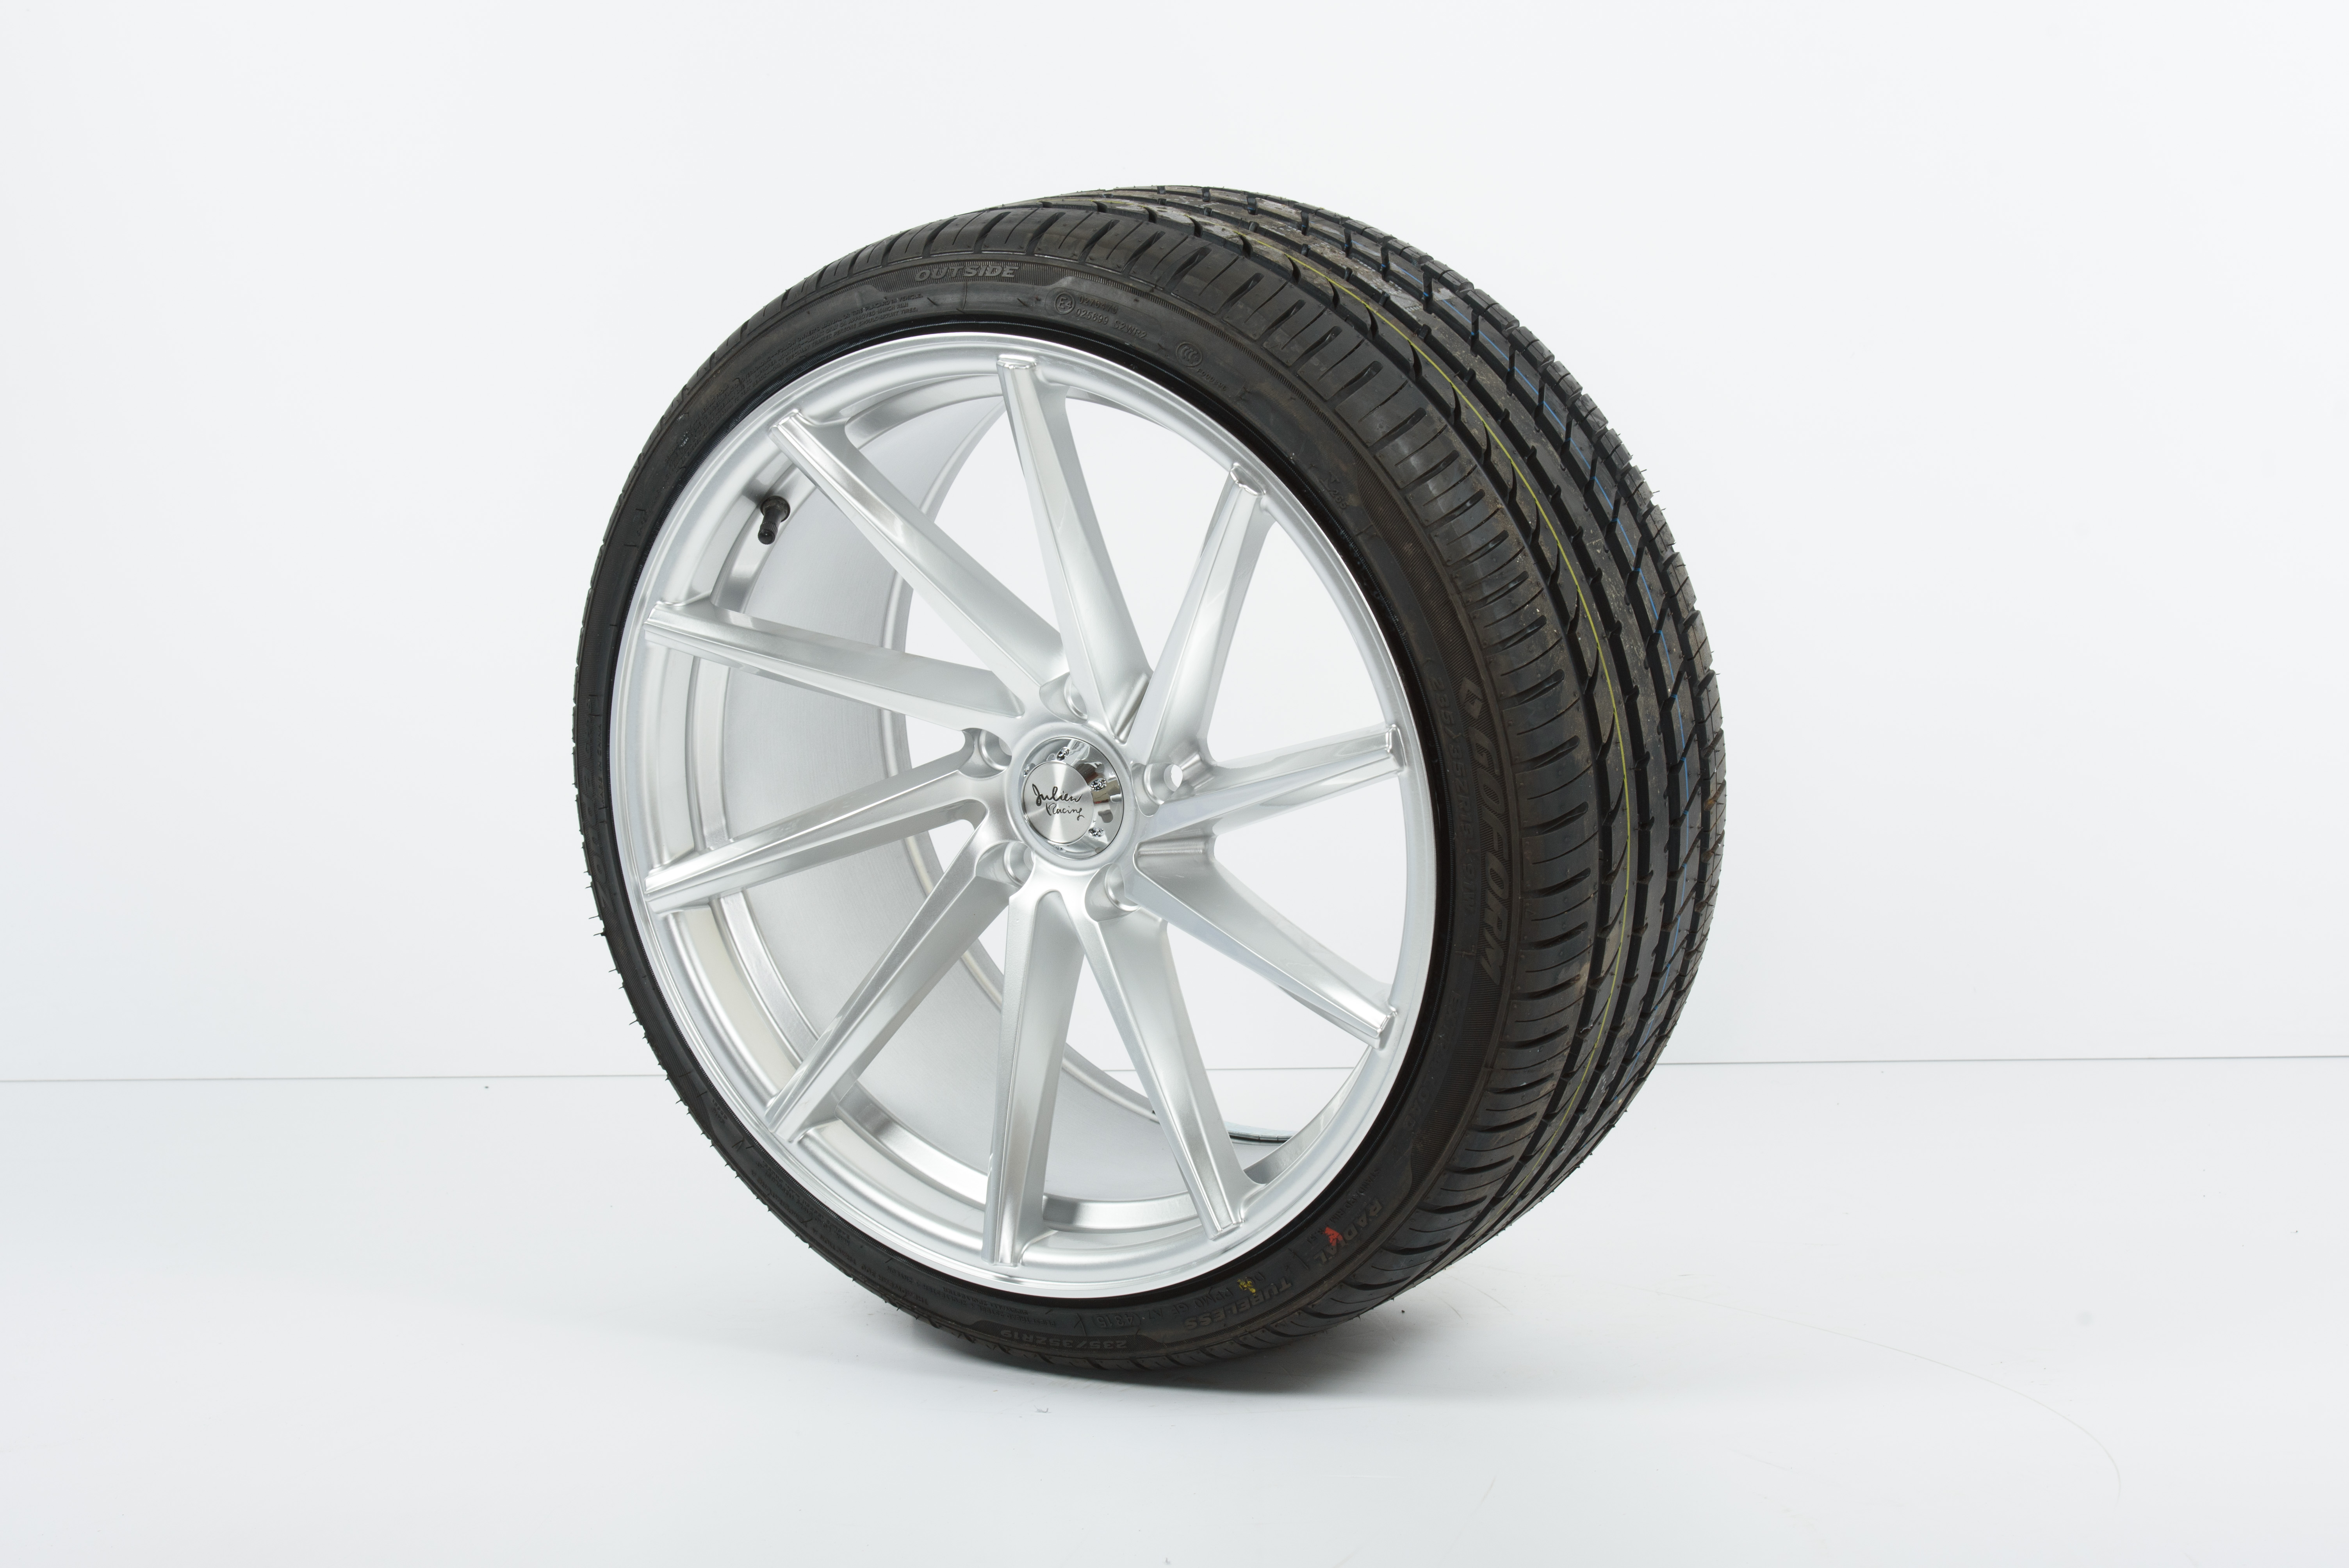 18 Vossen 18 215 8 0 5 215 112 Callaghan Tyres Alloy Wheels Amp Performance Parts